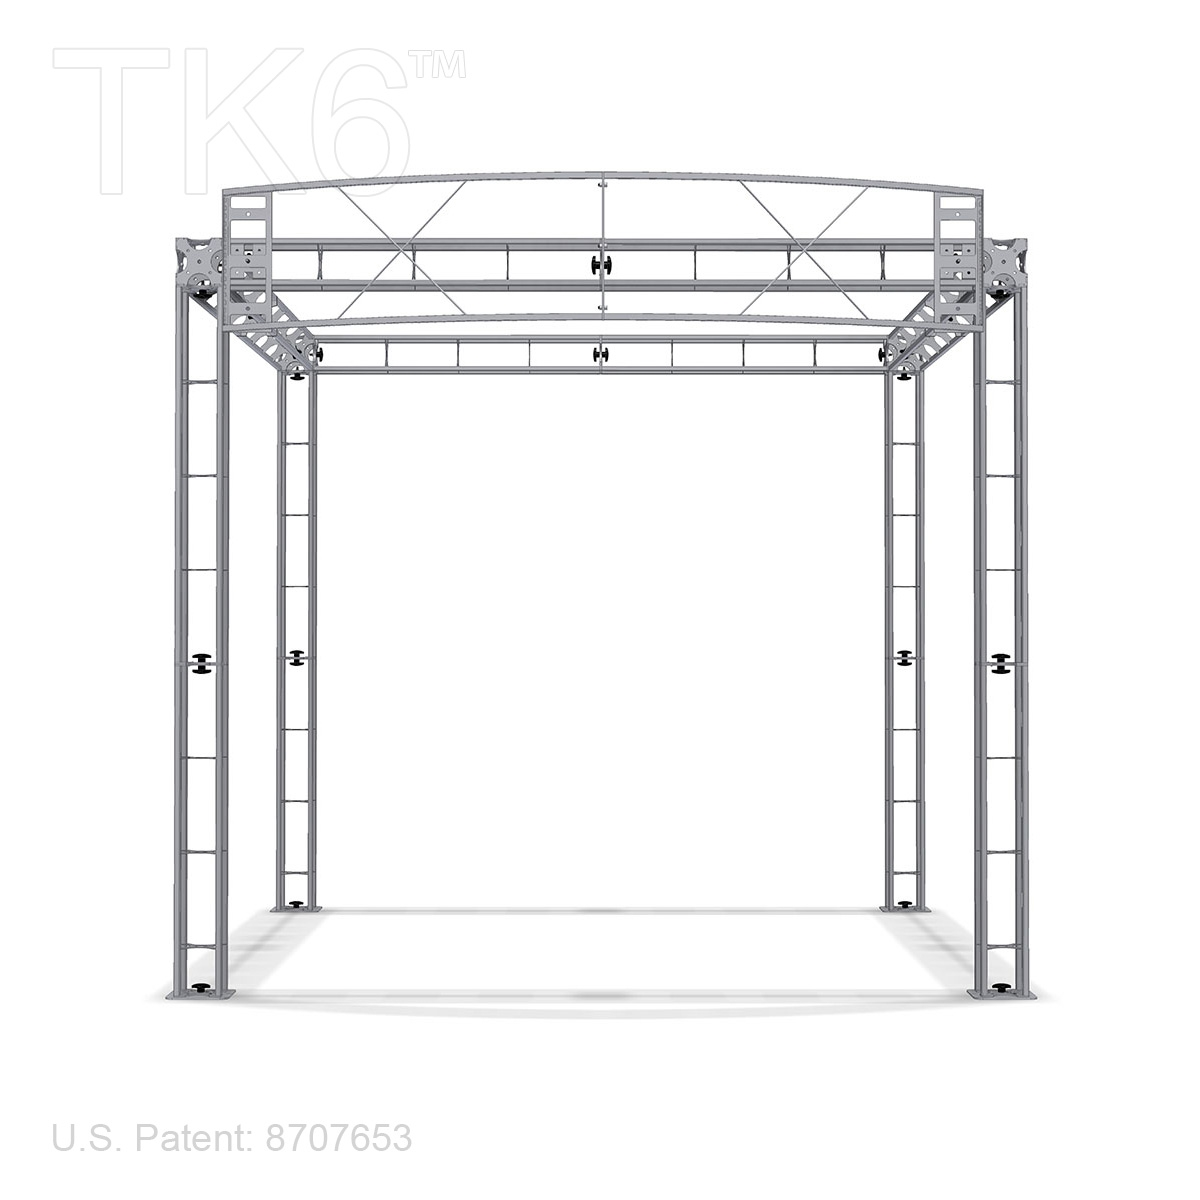 Awesome Truss Frame Image Collection - Ideas de Marcos - lamegapromo ...